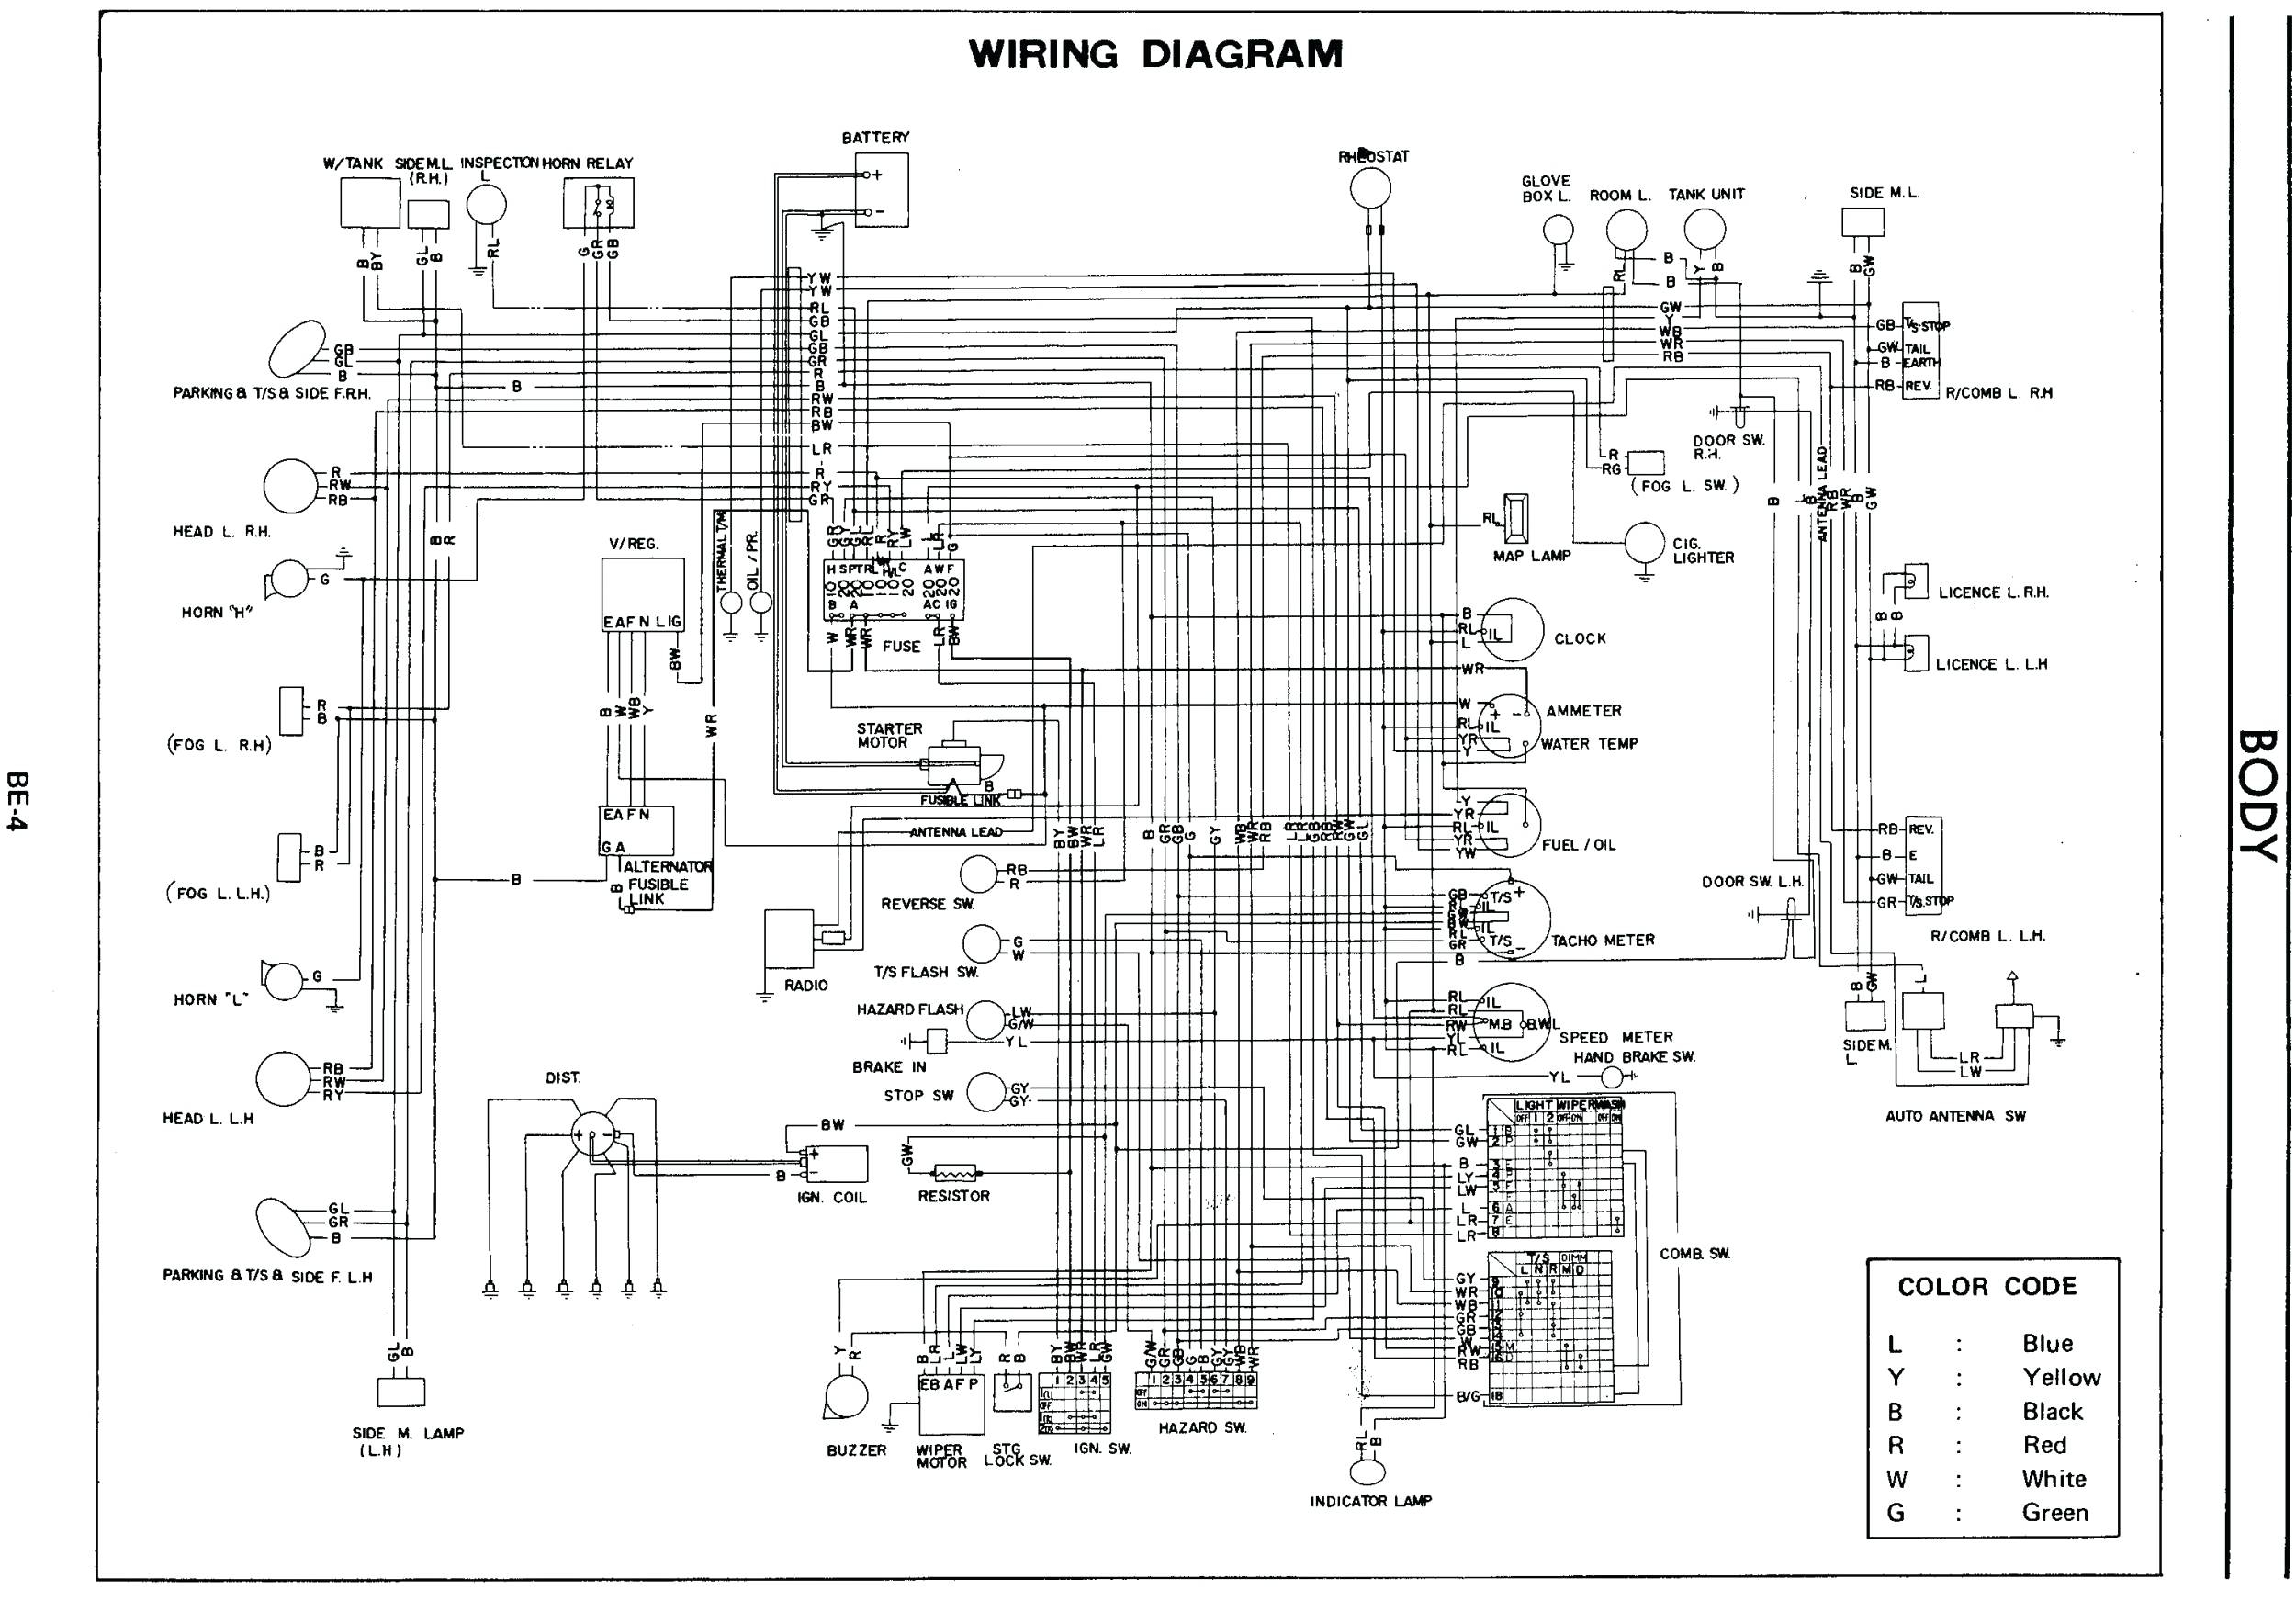 wiring diagrams images free online image schematic diagram rh grandkamalalagoon co